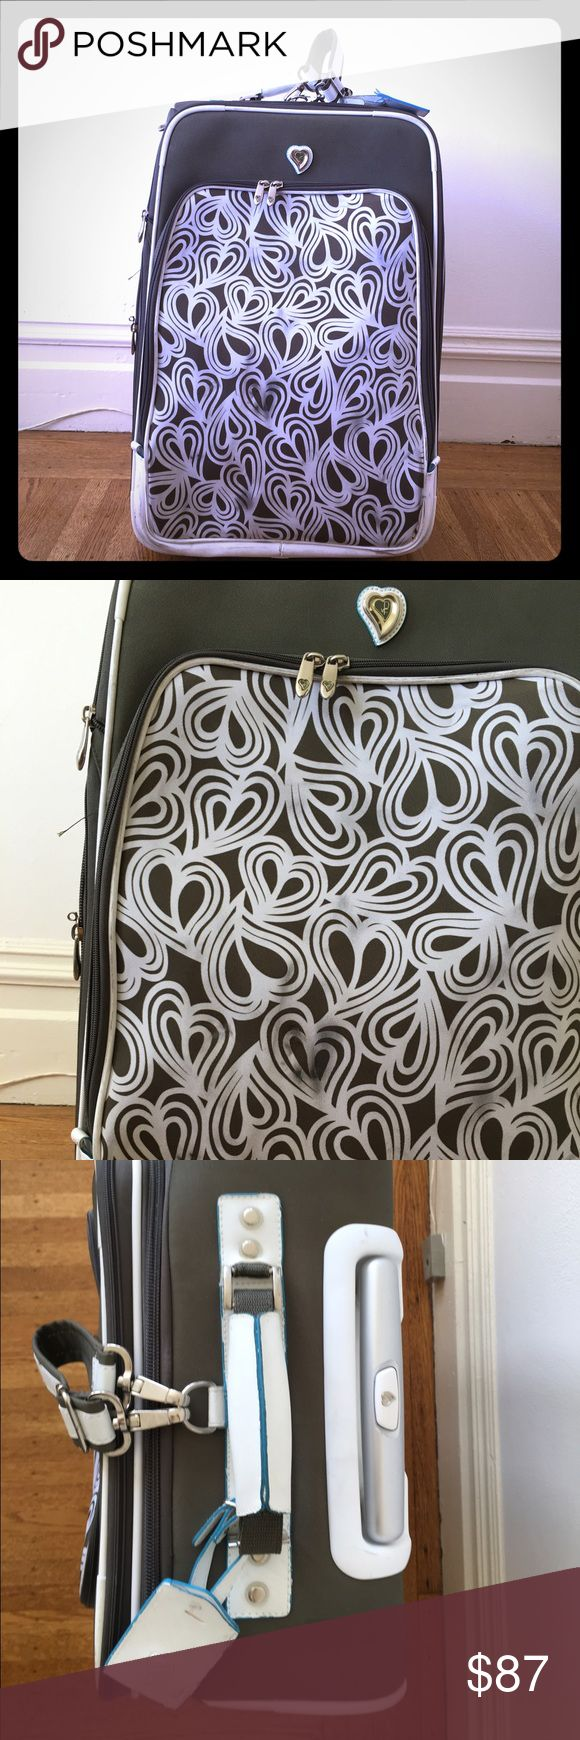 DVF Large Roller Bag This bag was used only a few times.  Green and white heart pattern stands out on baggage carousel. Expandable zip section if squeezing everything in isn't cutting it. Some markings on the front from being checked, may wash out. Lockable zippers - Single top telescoping handle - Zip around closure - Exterior features zip extension, heart jacquard construction, 4 wheels, and front zip pocket - Interior features 2 zip mesh pockets, 1 zip pocket, 2 slip pockets and garment…